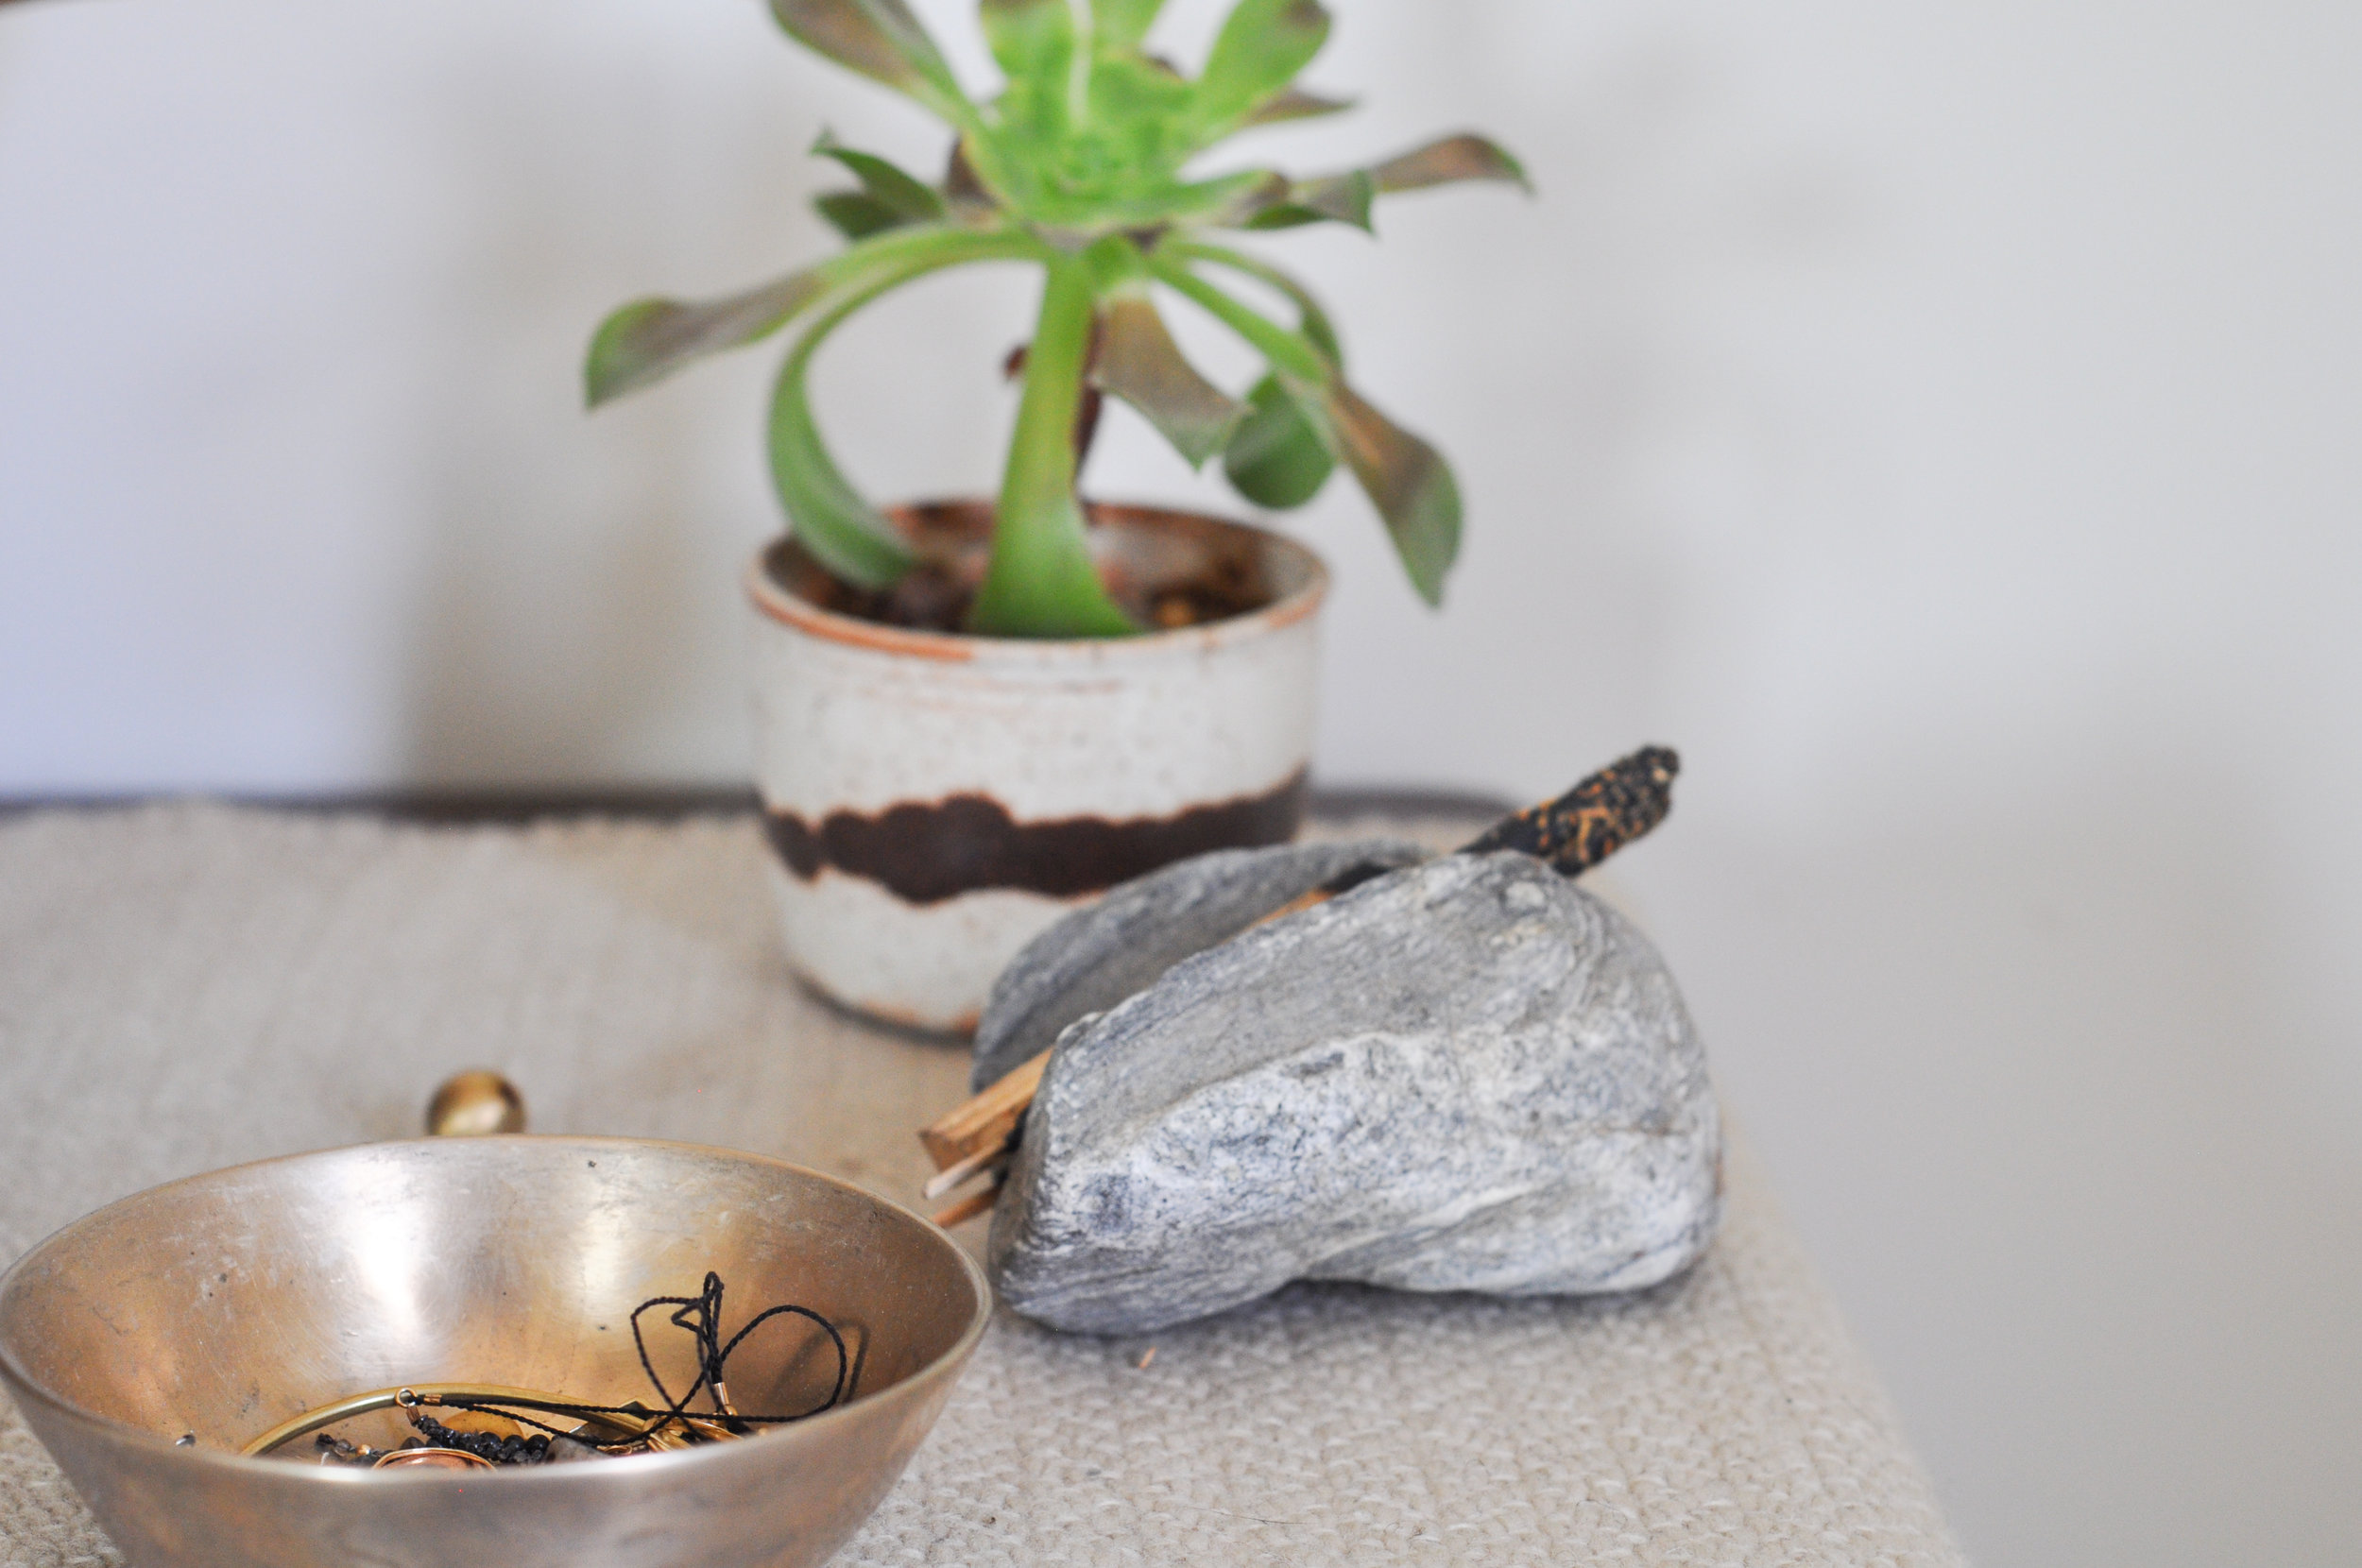 free-and-native-table-plant-bowl